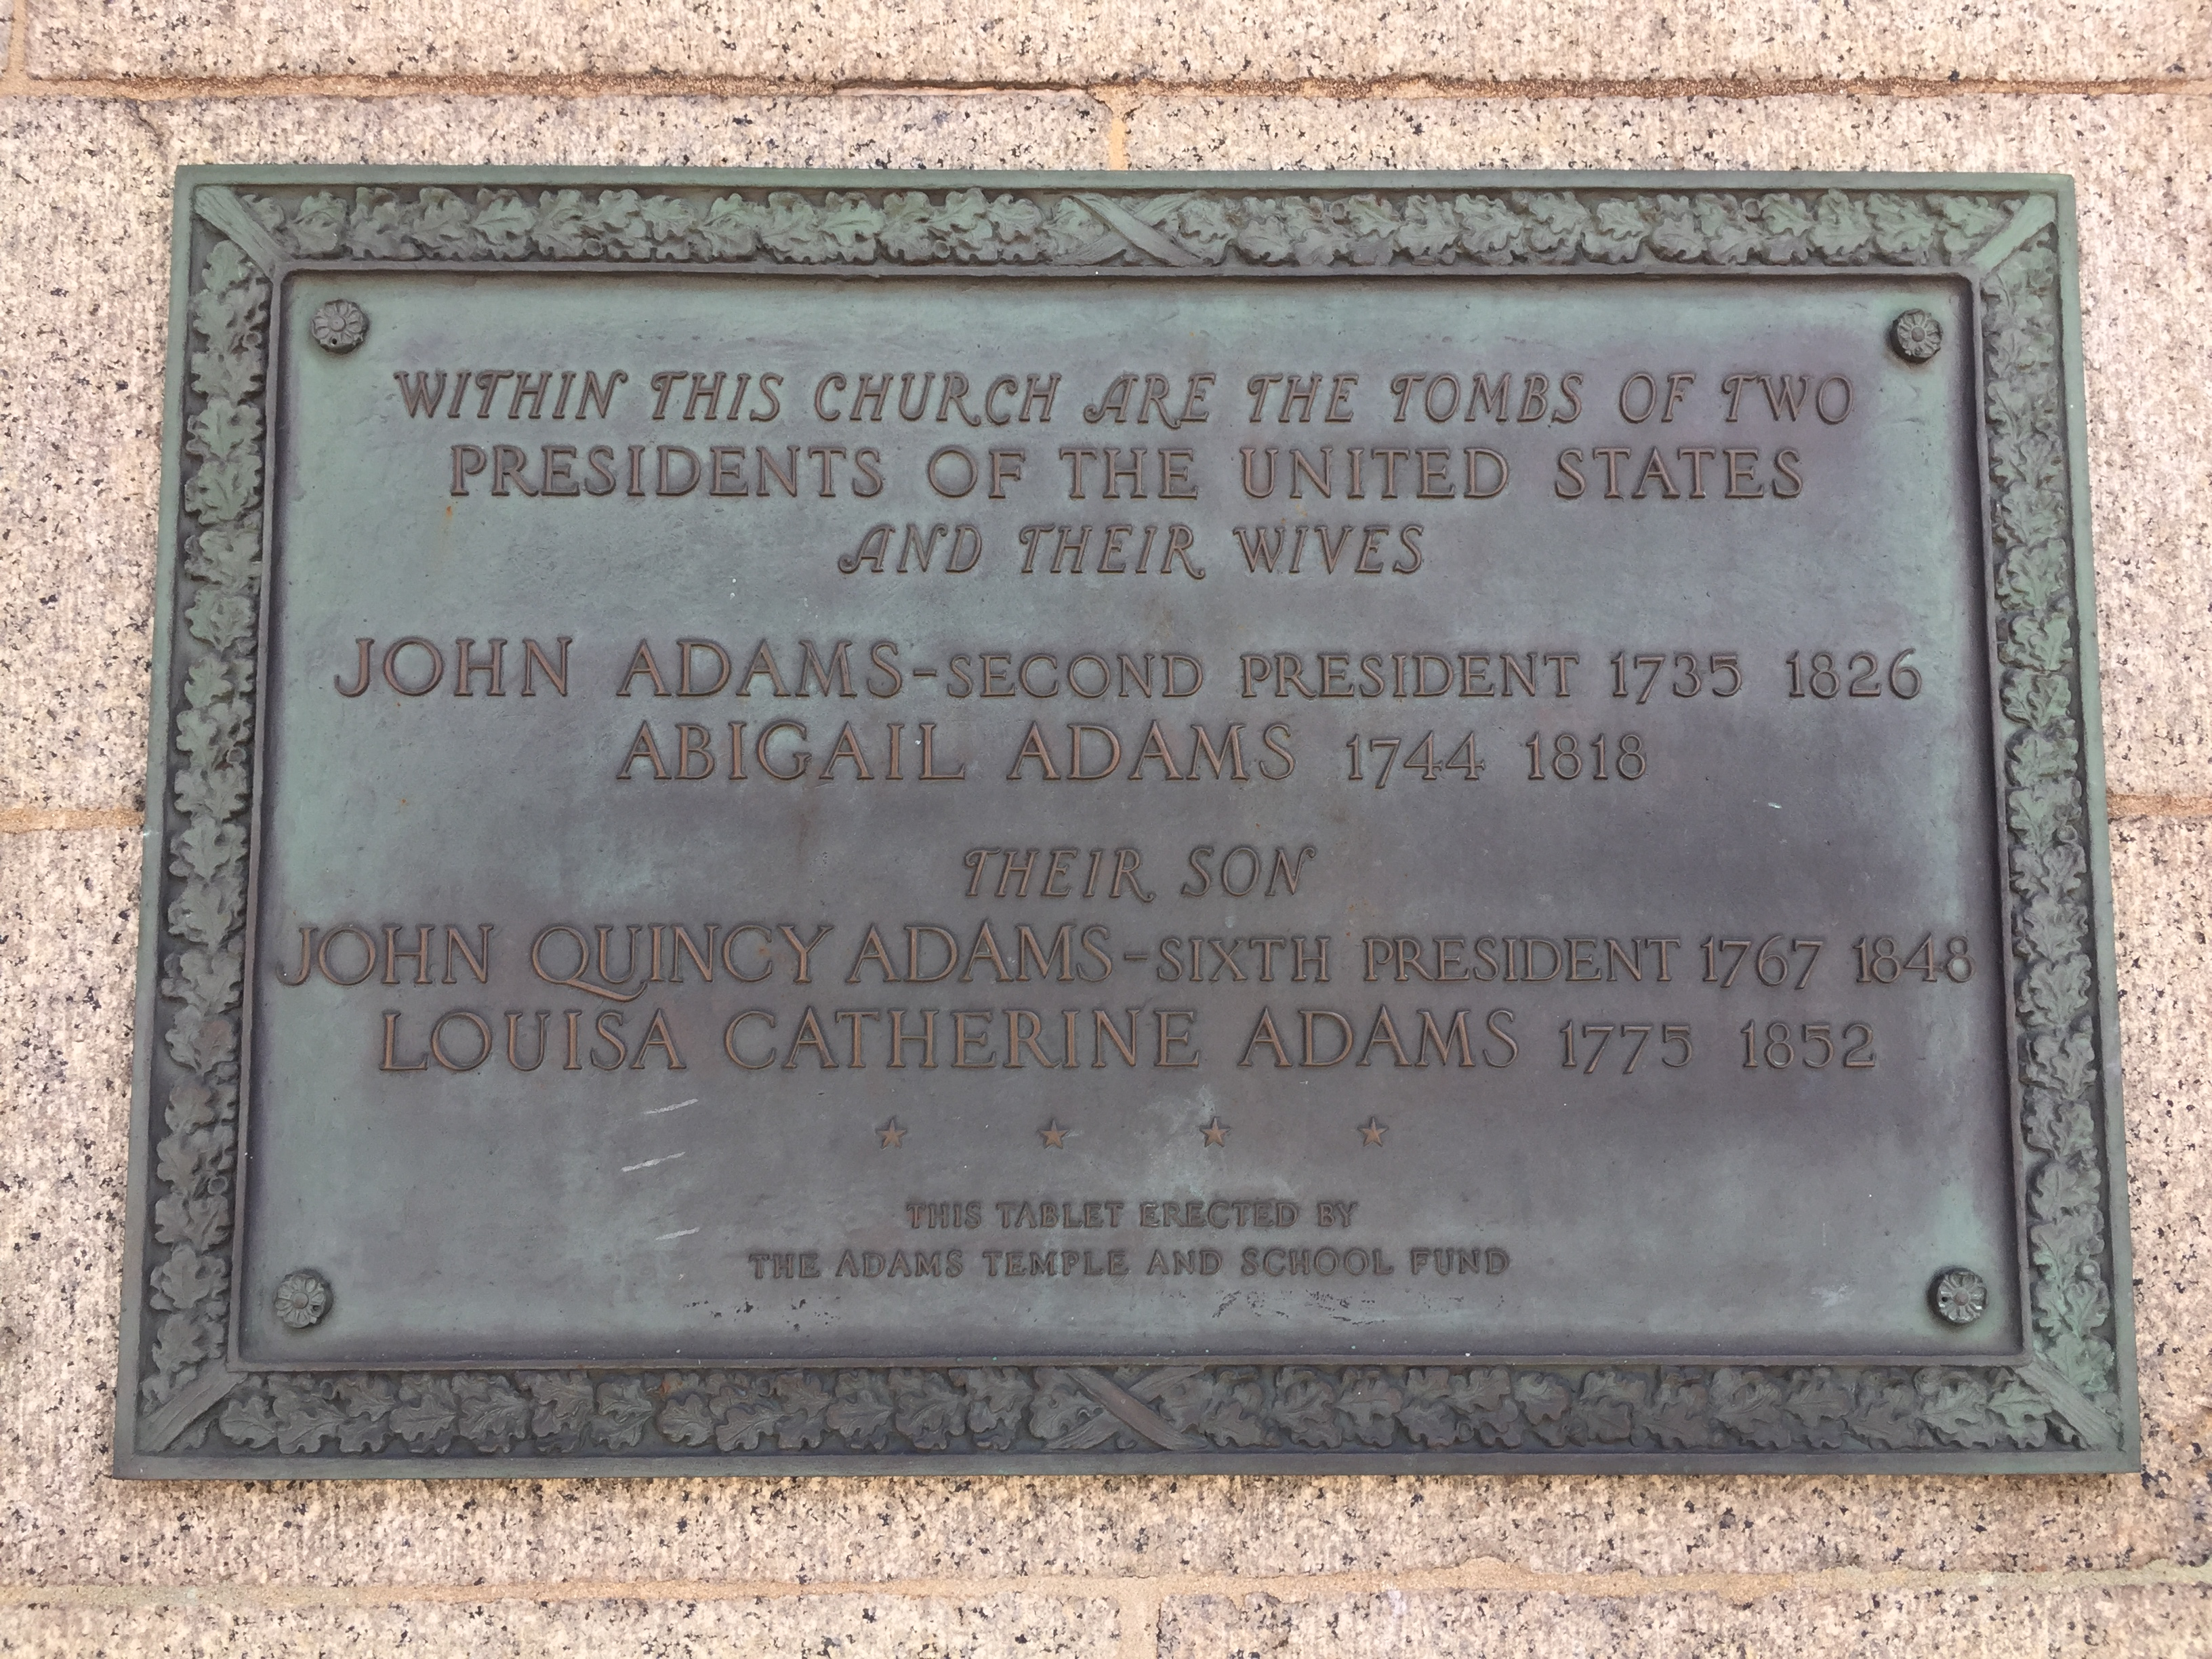 This plaque denoting the location of the Adams Crypt is affixed to the front of the church.